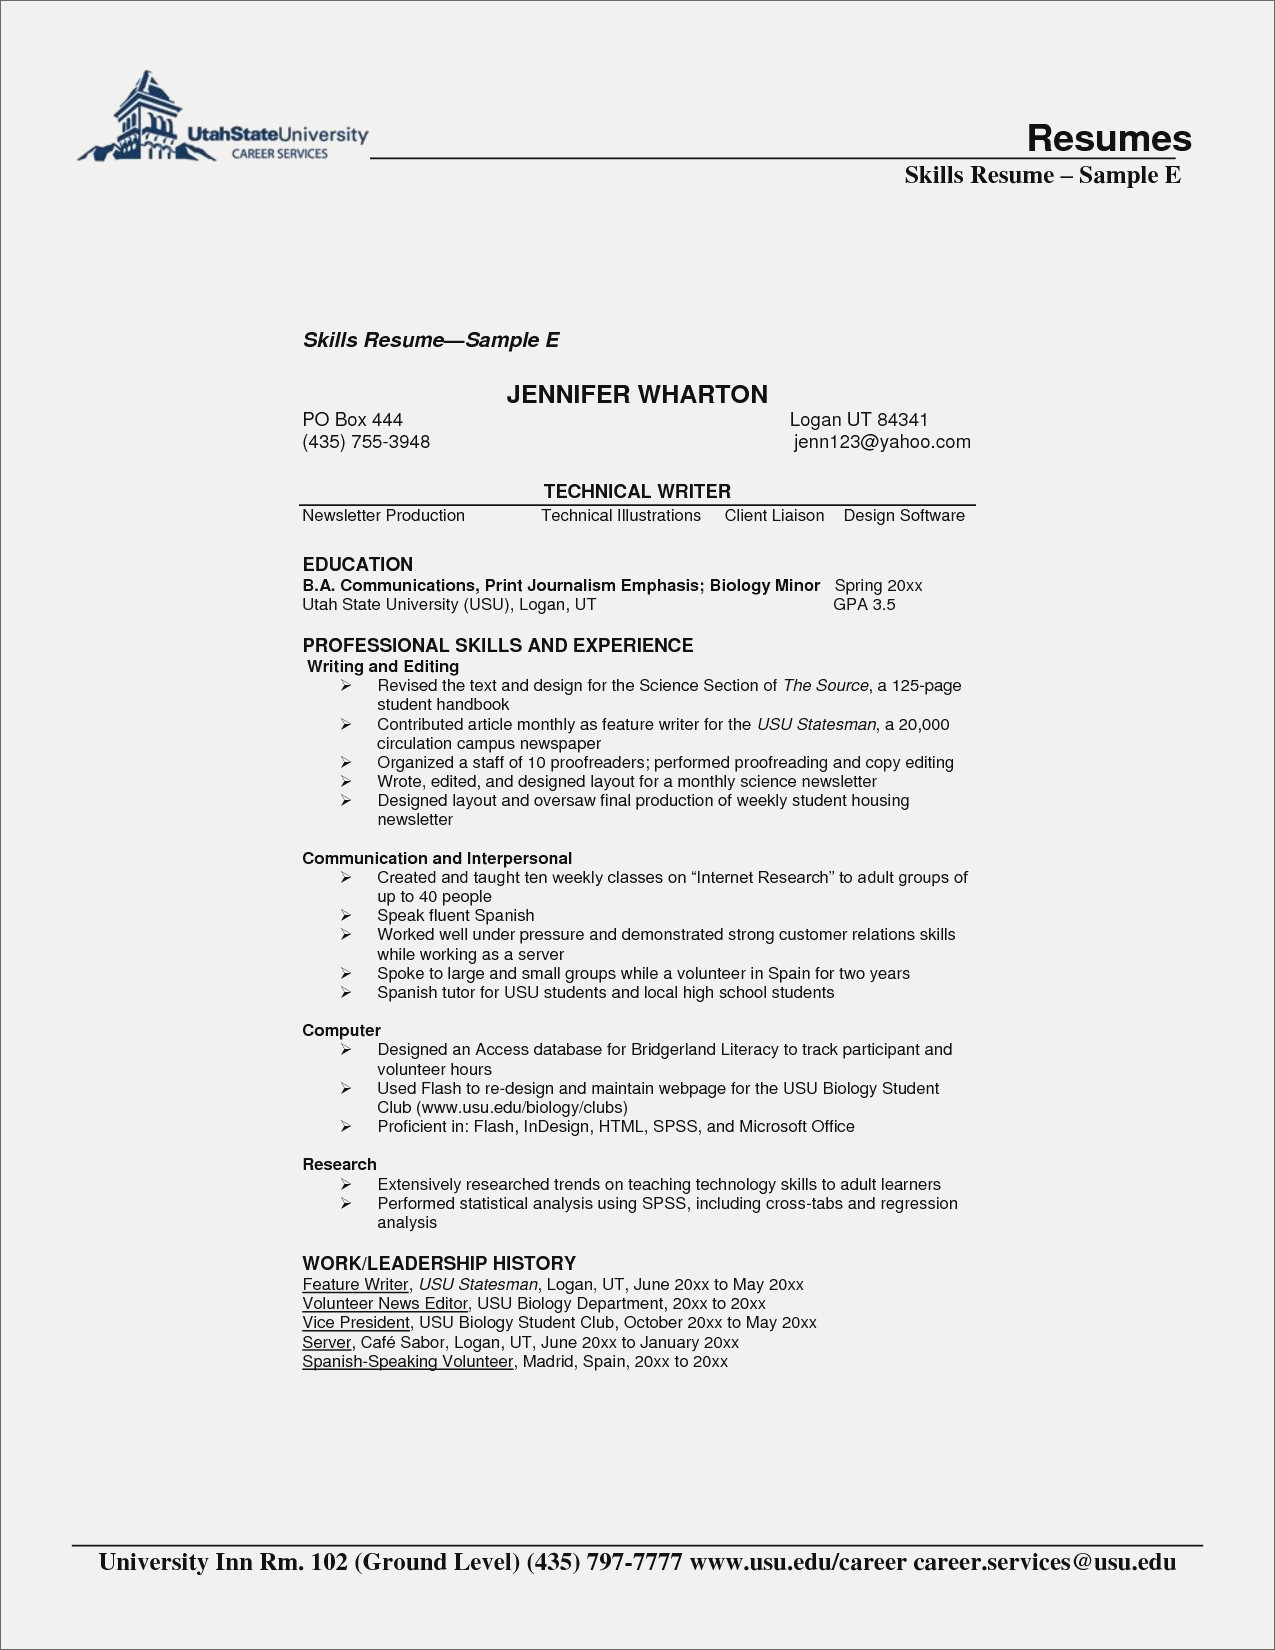 Objective Section Of Resume - Cheap Resumes Fresh Puter Skills Example Unique Examples Resumes